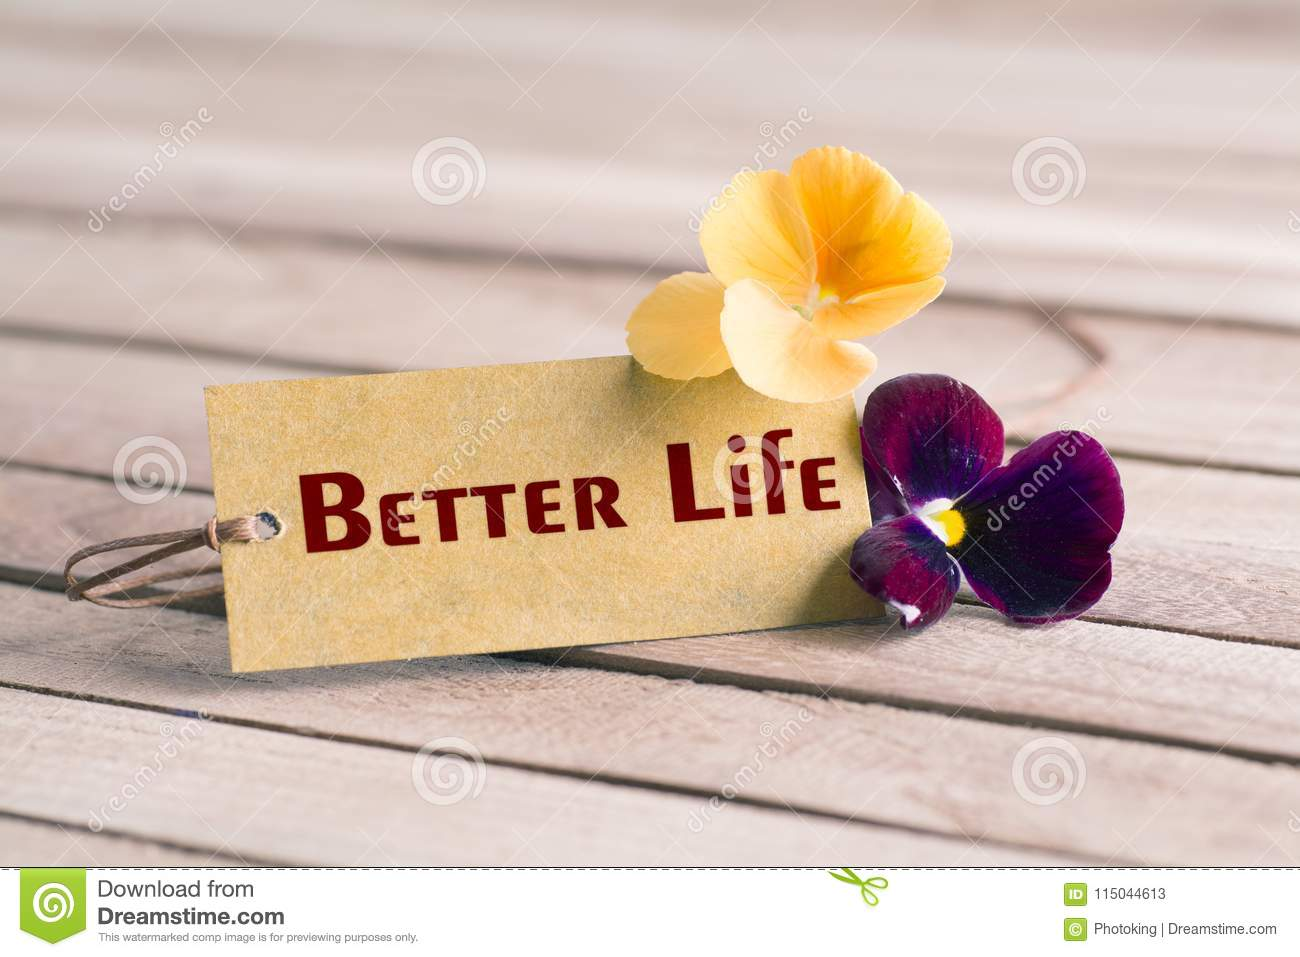 Better life tag